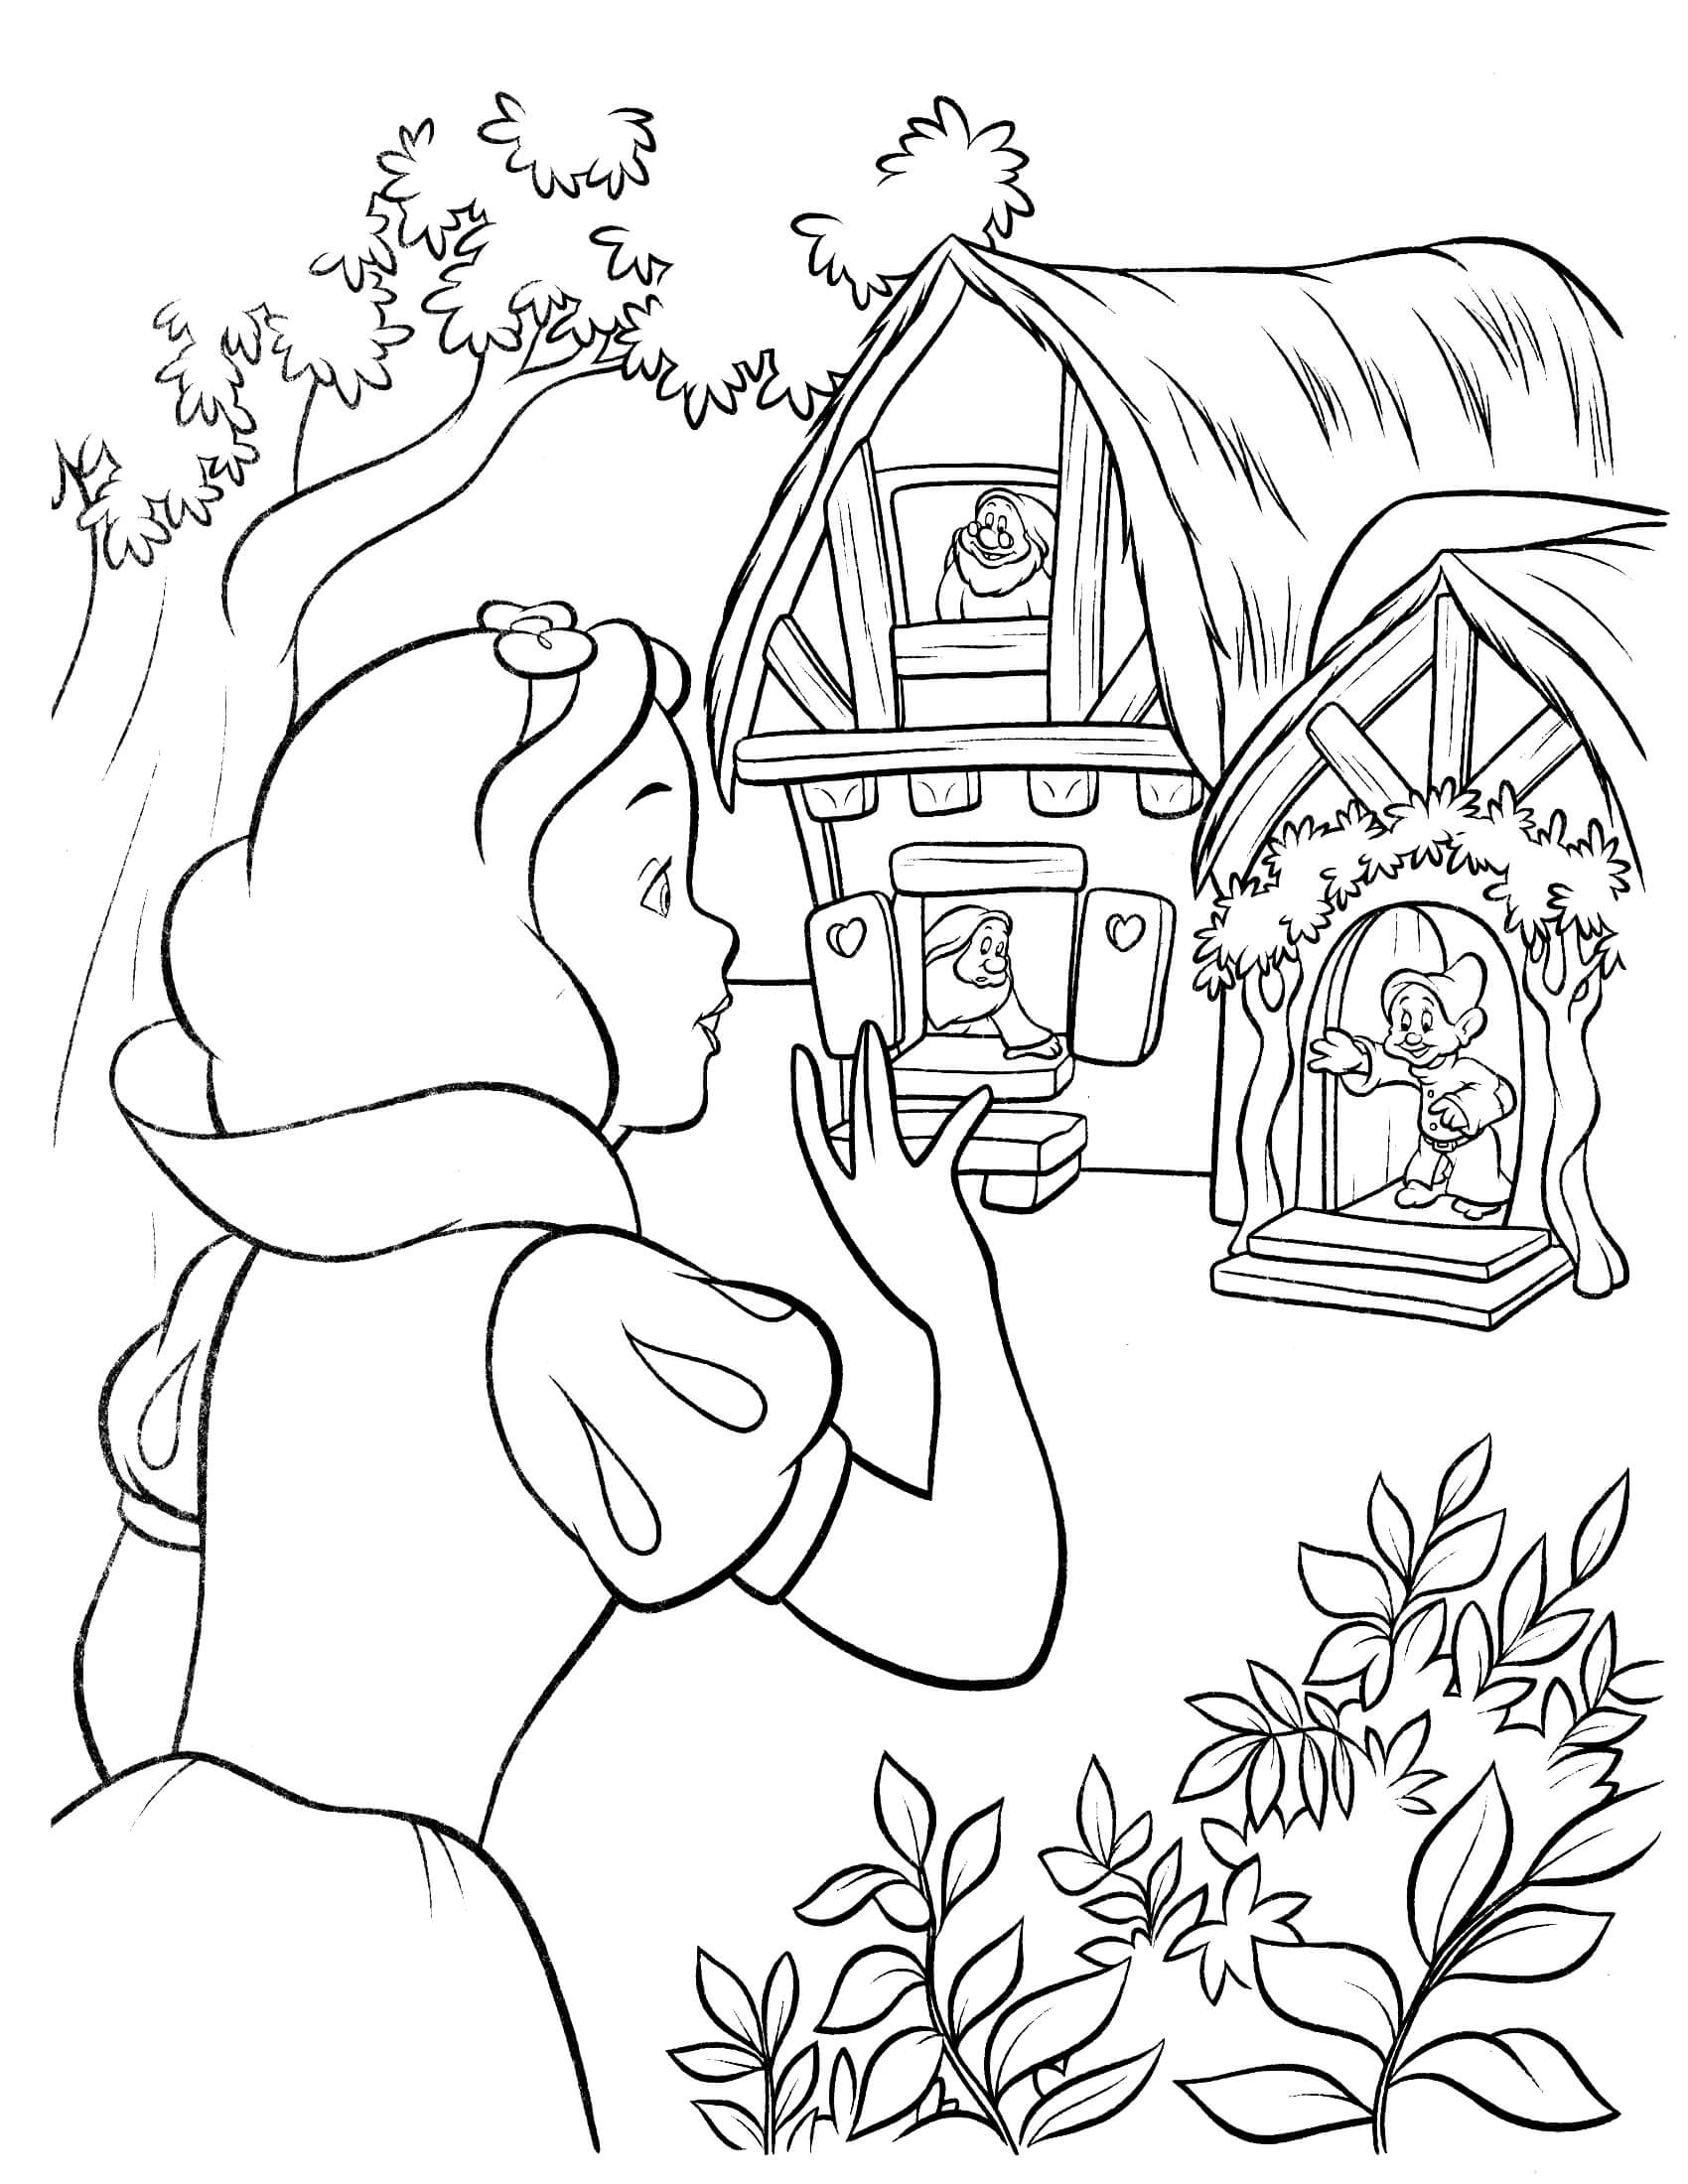 Snow White Coloring Worksheet